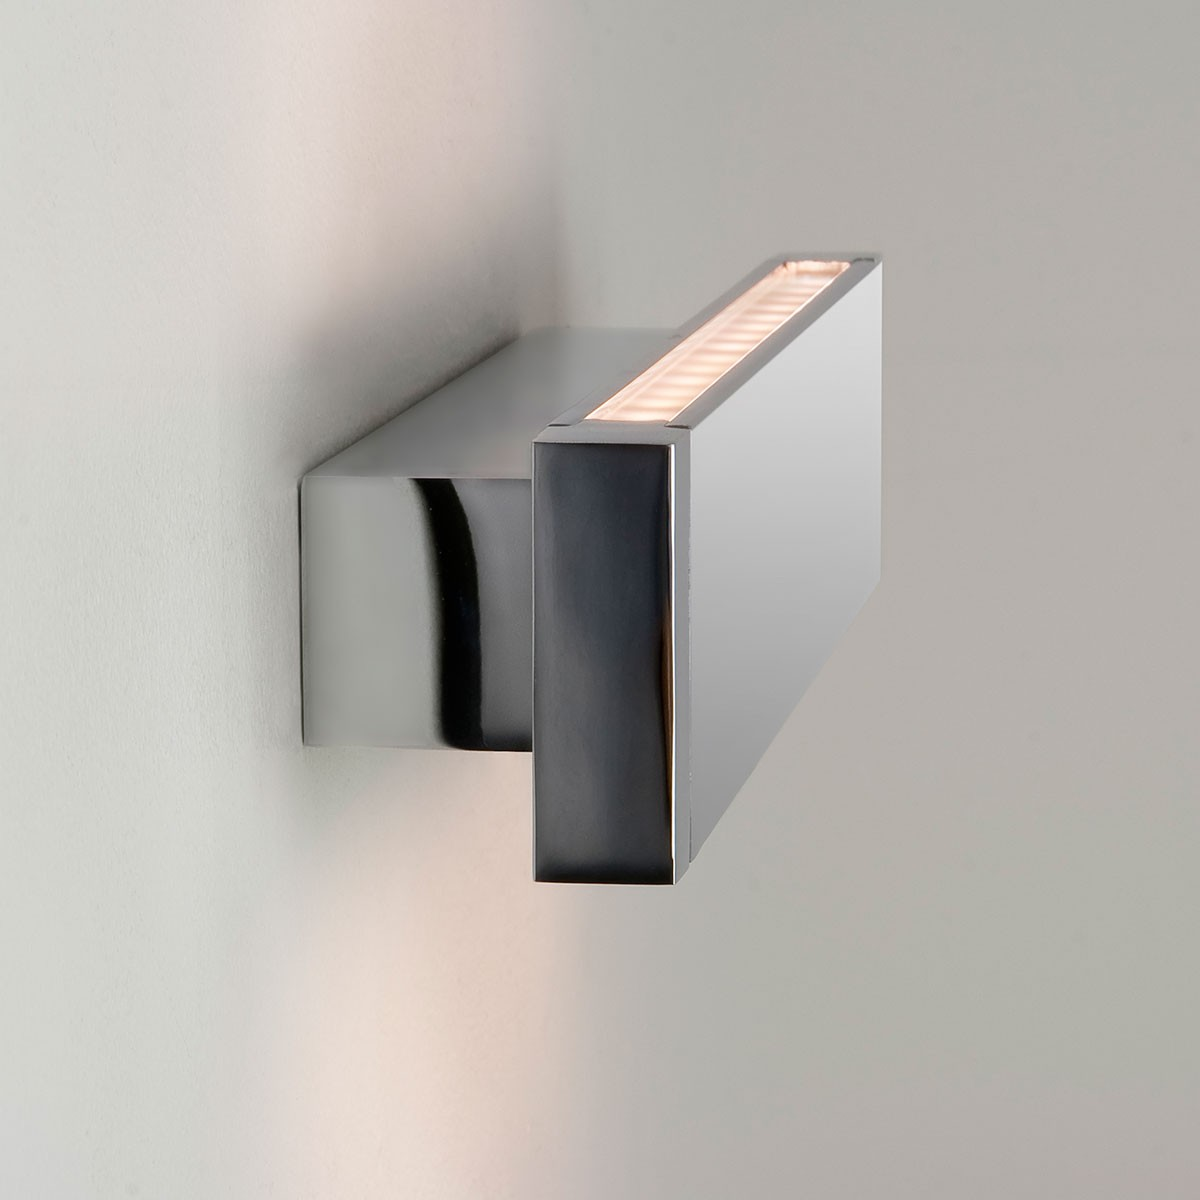 Led Bathroom Wall Lights Uk: Astro Bergamo 300 Polished Chrome Bathroom LED Wall Light